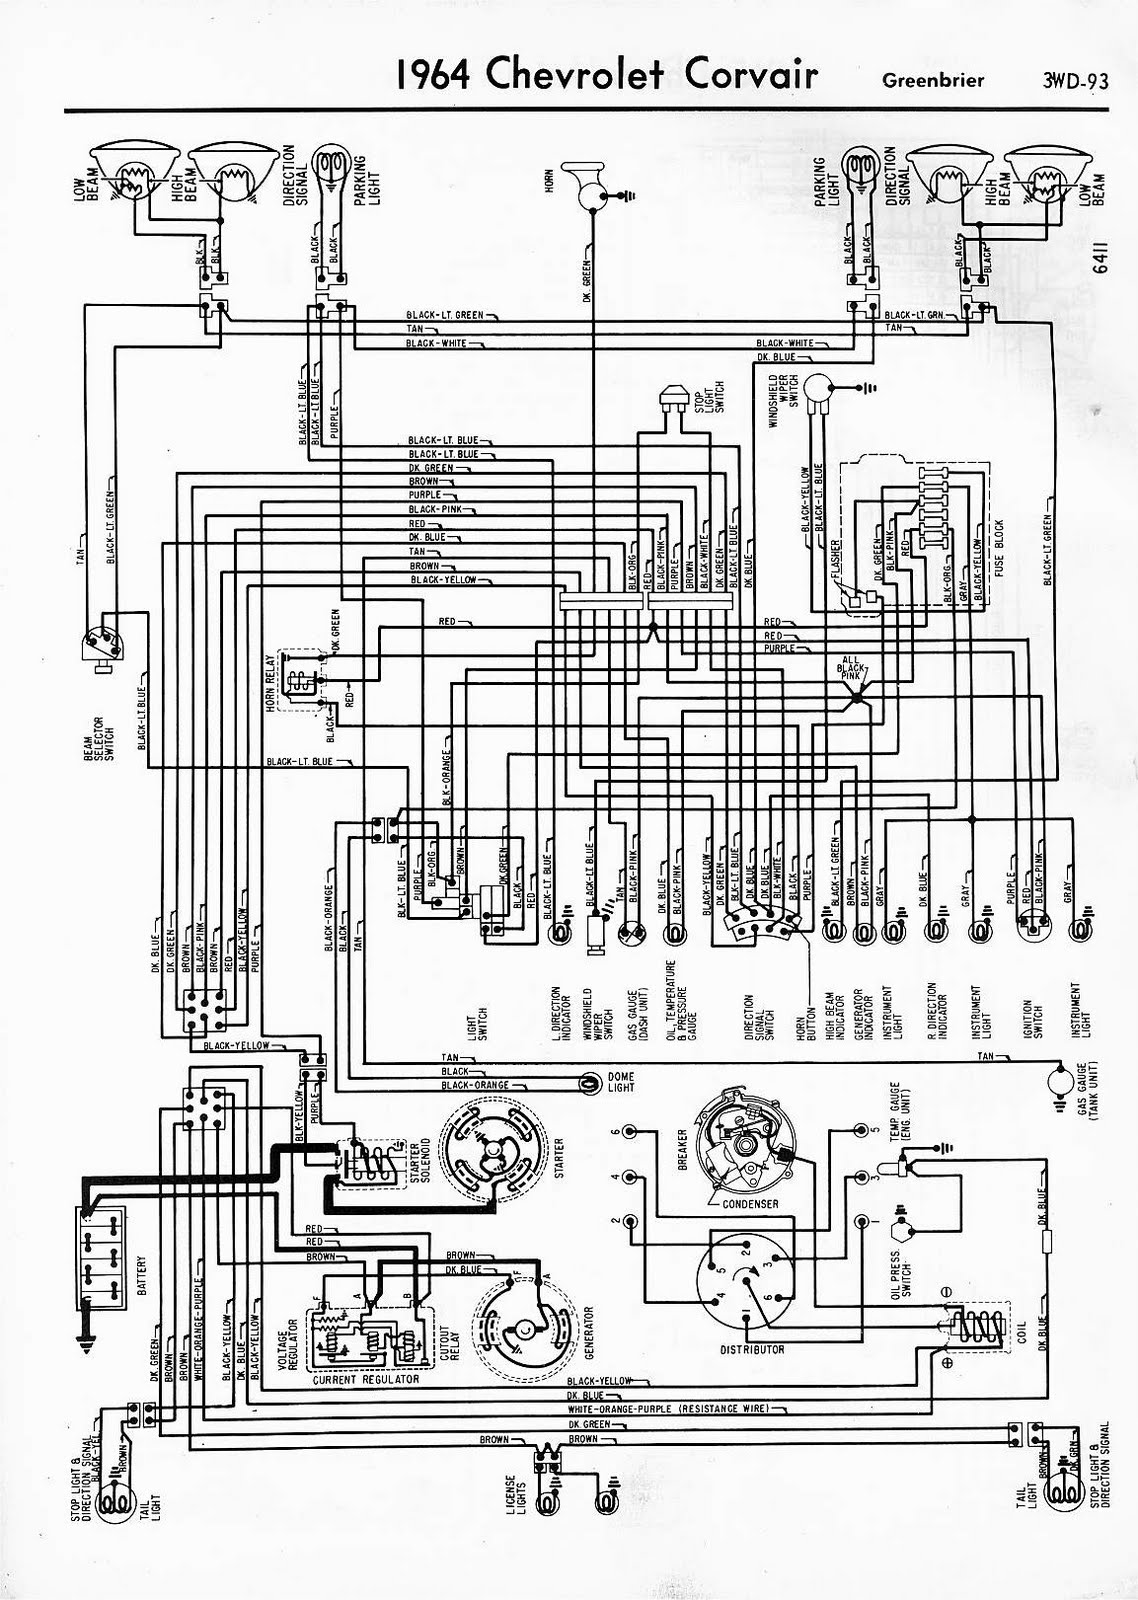 hight resolution of 63 corvair wiring diagram wiring diagram for you 1965 corvair wiring diagram corvair fuse box wiring